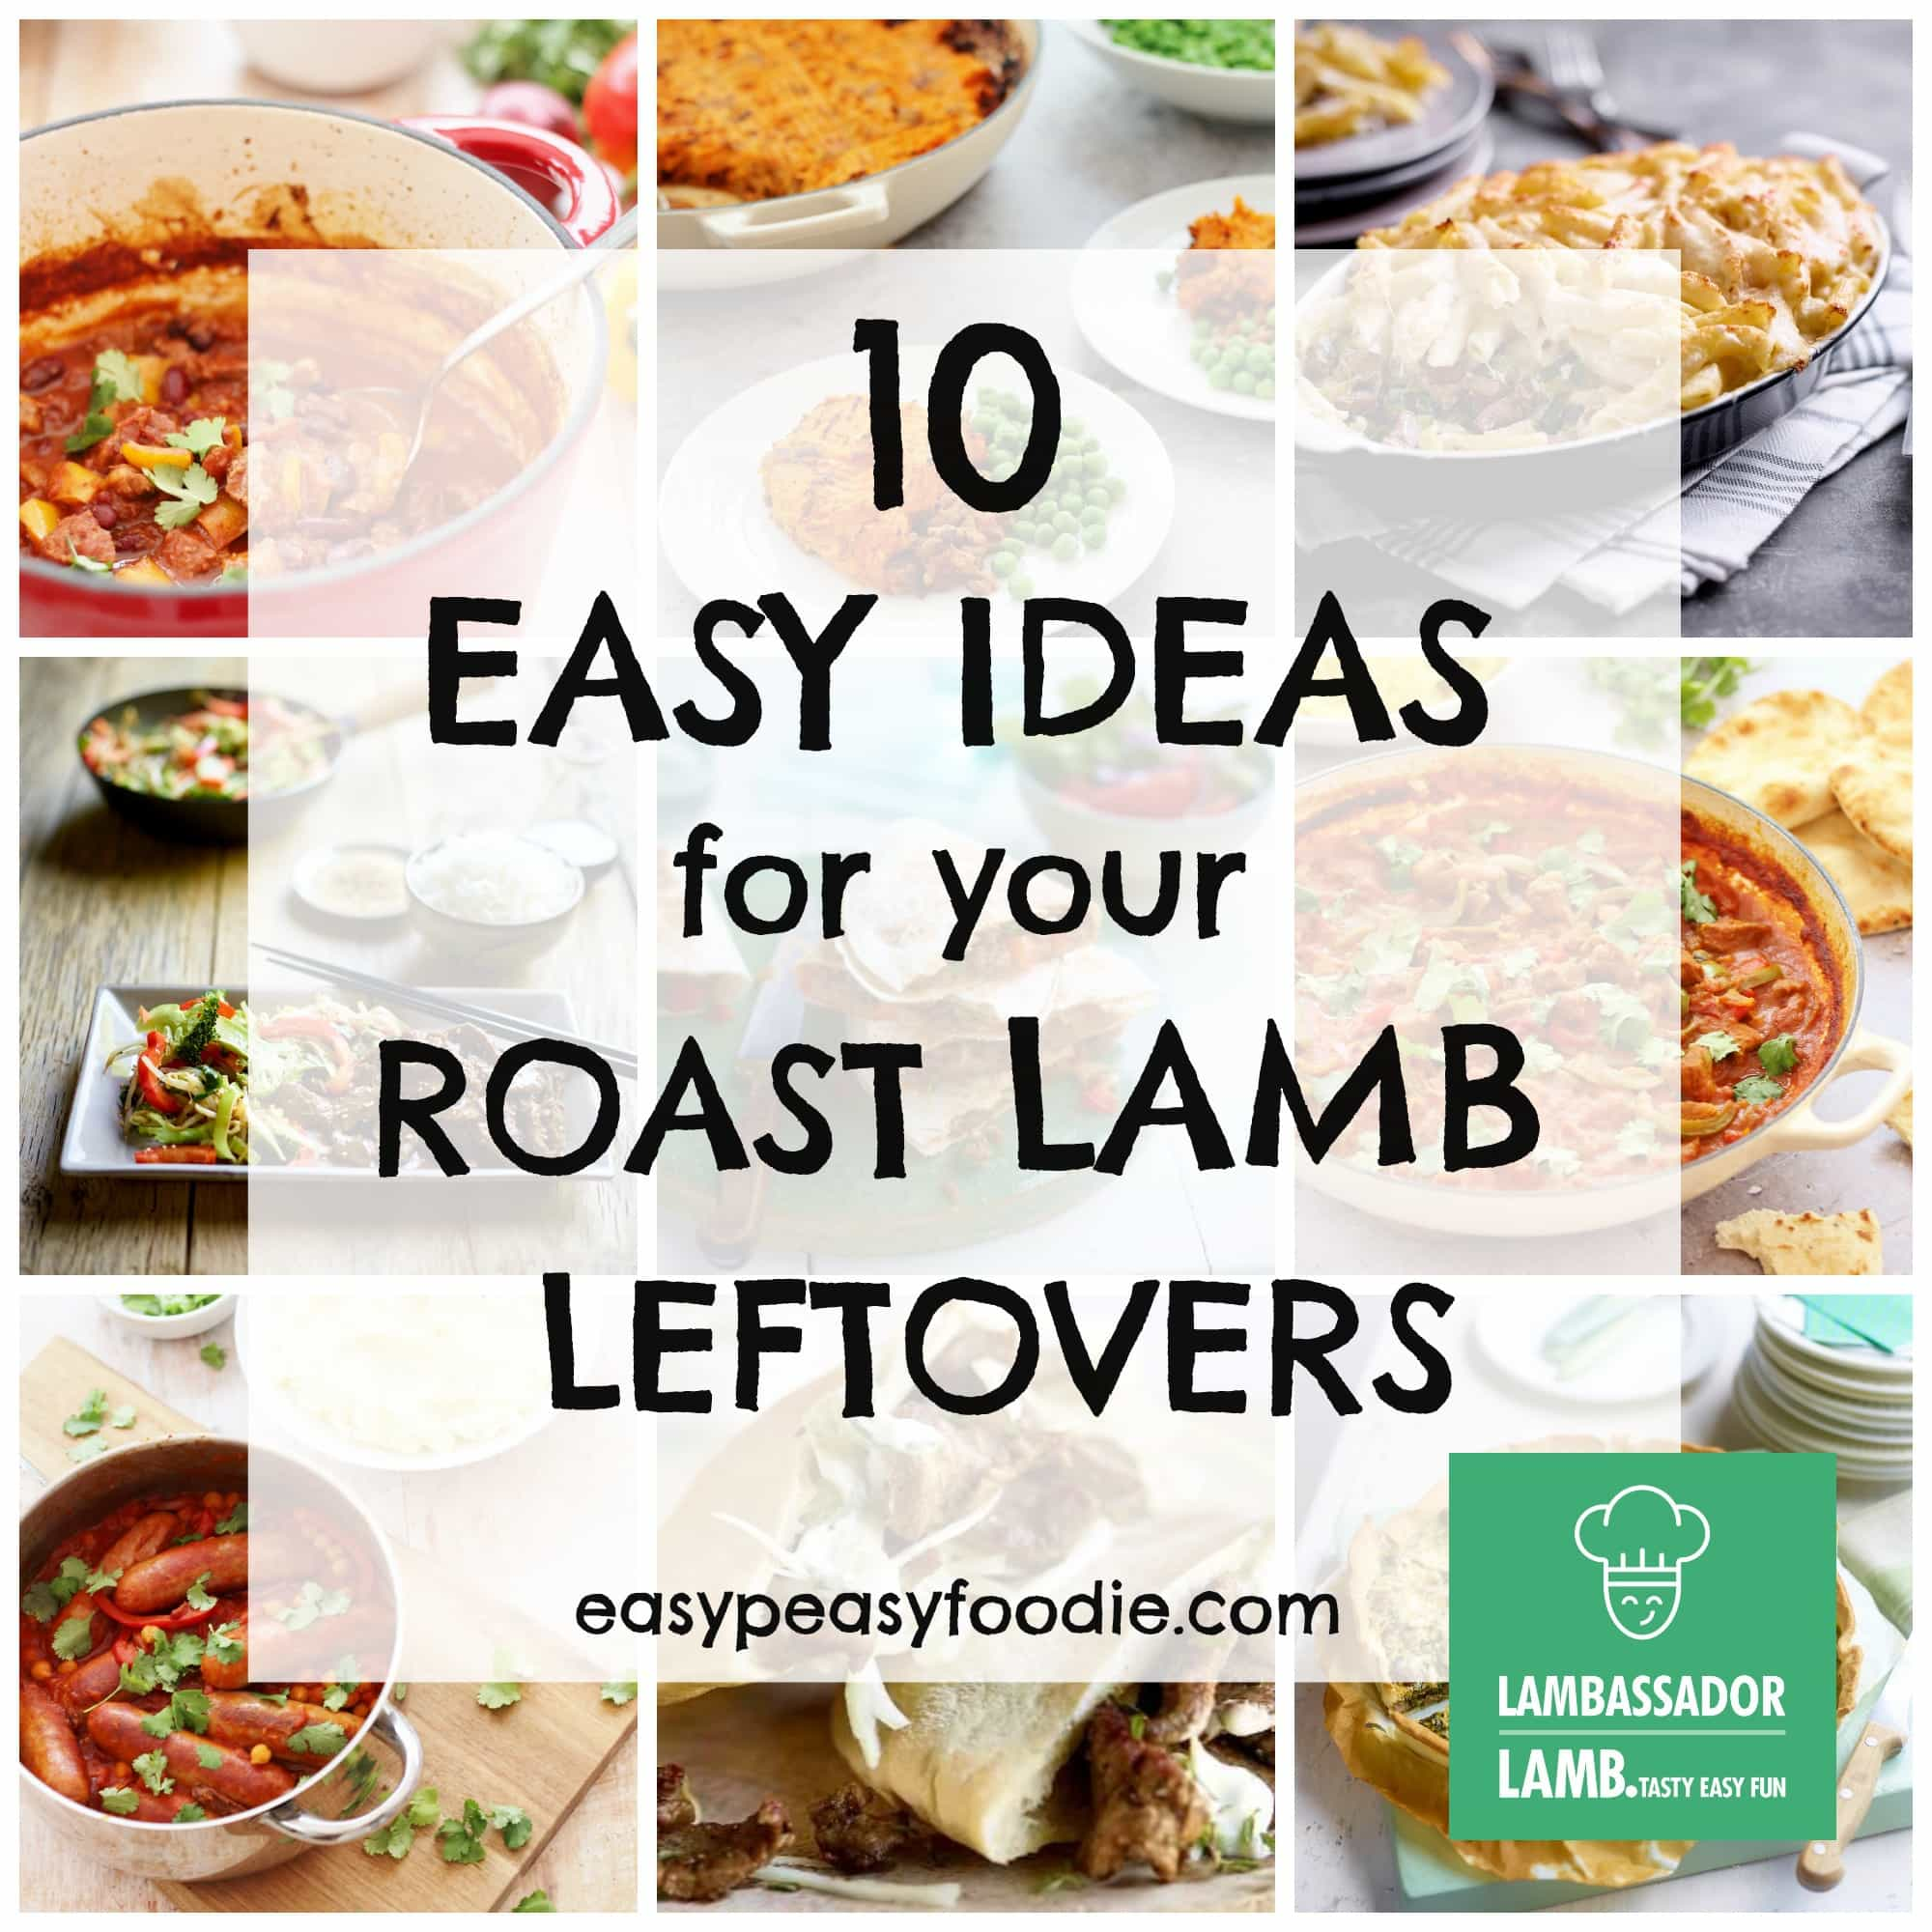 Need a few ideas for how to make the most of your leftover roast lamb? Want something a bit more inspiring than lamb sandwiches or cold meat and vegetables? Check out these 10 Easy Ideas for your Roast Lamb Leftovers… #lamb #roastlamb #lambleftovers #leftoverlamb #leftovers #easyrecipes #easypeasyfoodie